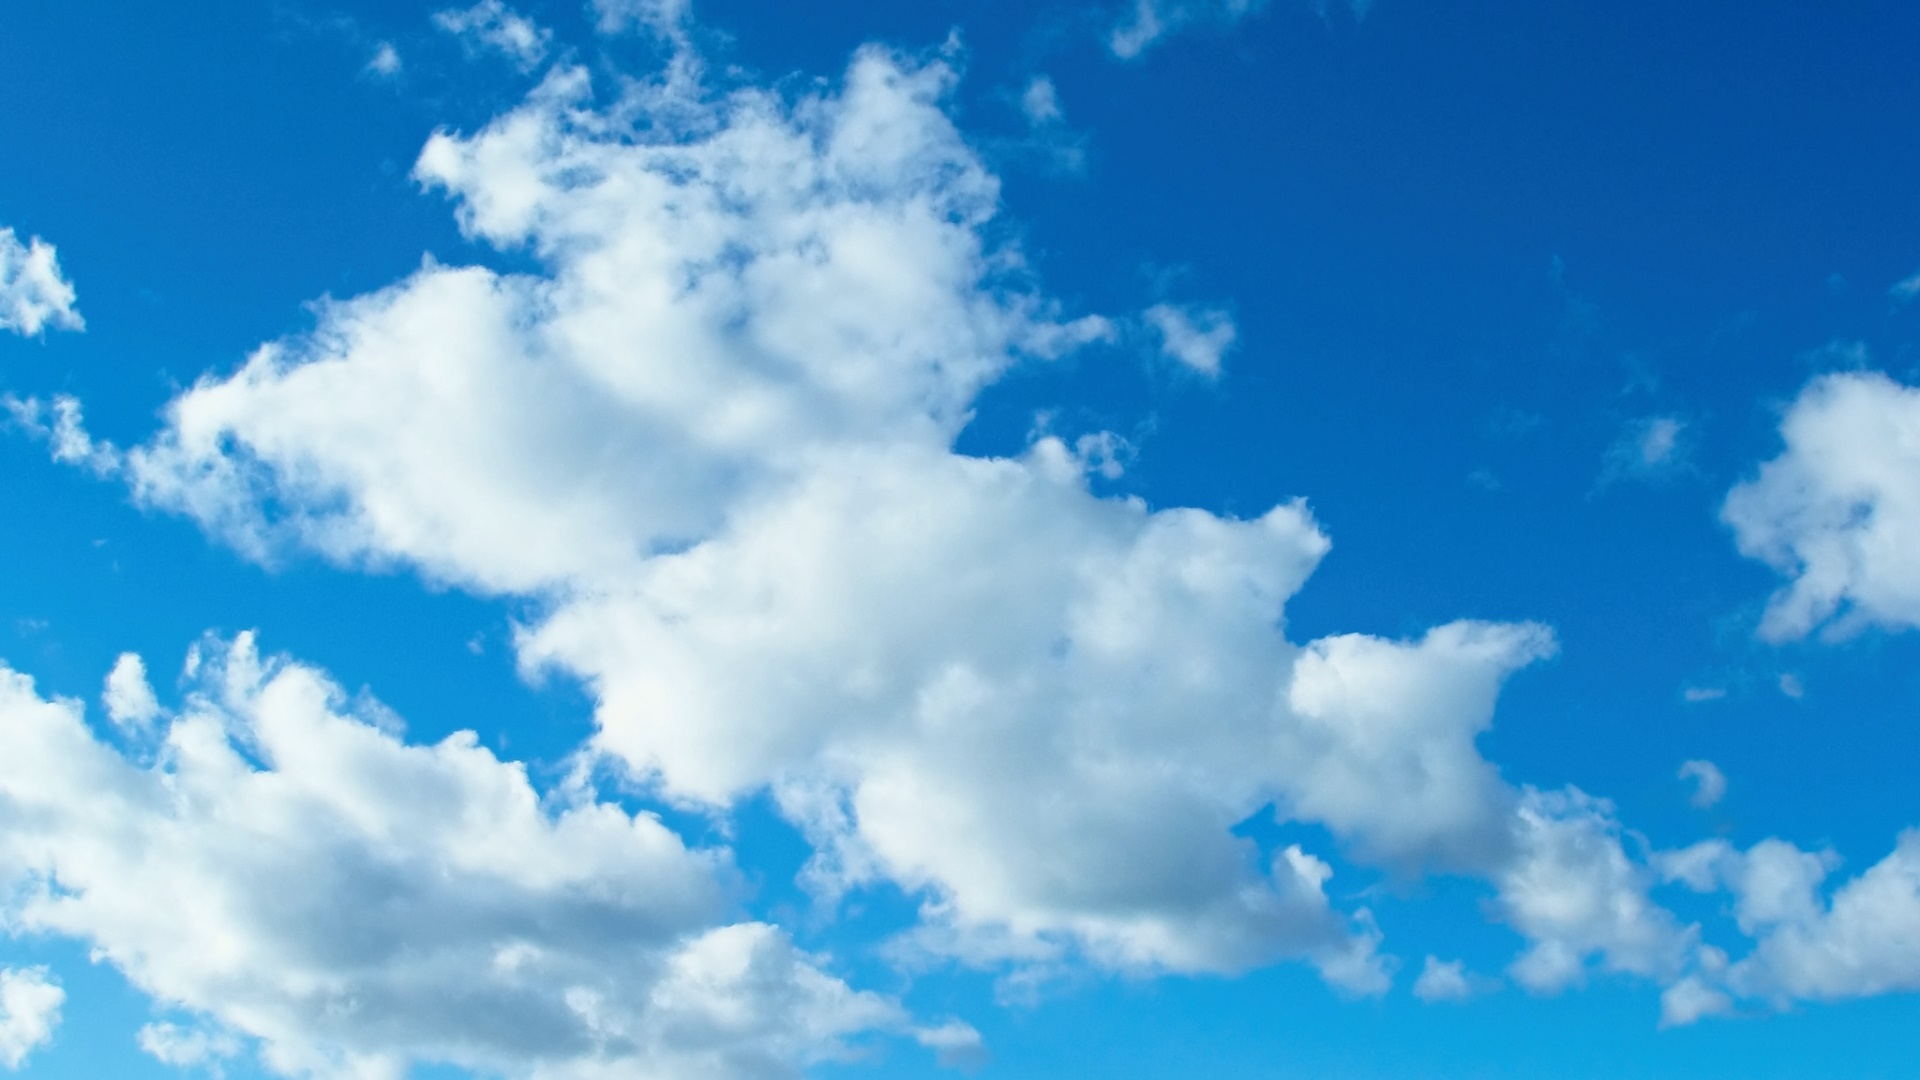 White Puffy Clouds In Blue Sky Hd Wallpaper Background Image